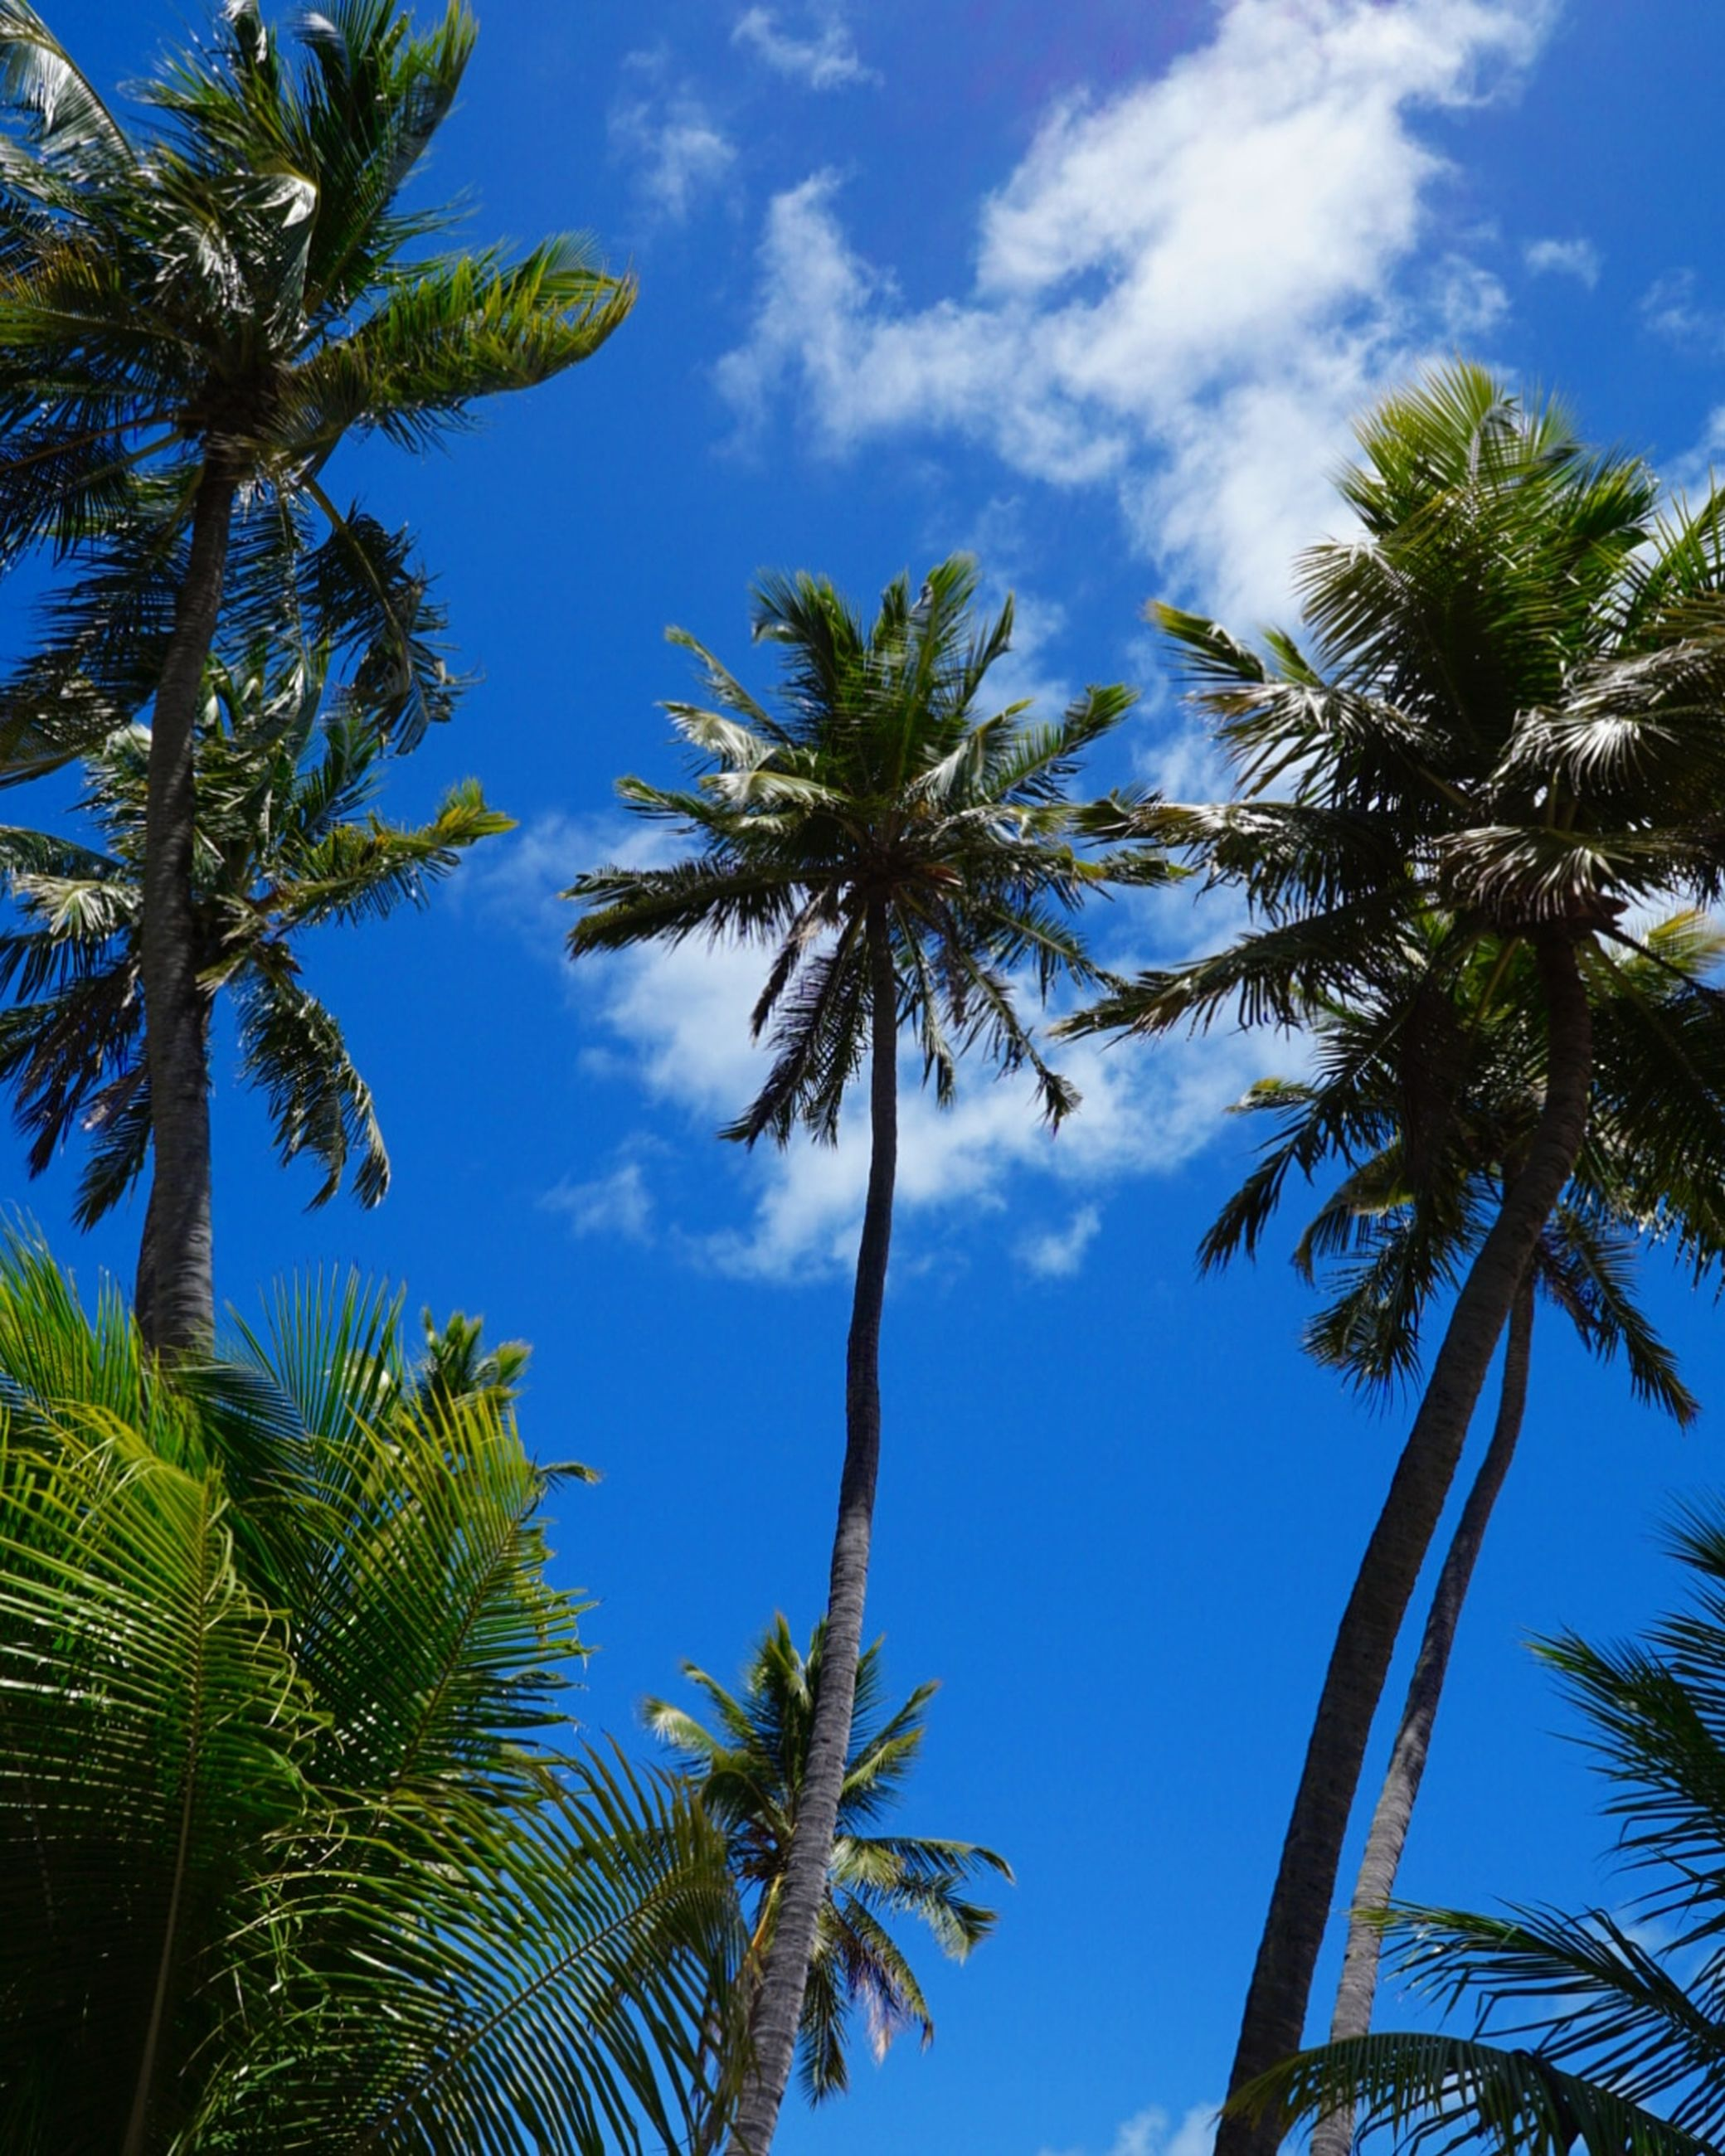 plant, tree, sky, palm tree, tropical climate, growth, low angle view, cloud - sky, beauty in nature, tree trunk, trunk, tranquility, no people, nature, blue, tall - high, green color, day, scenics - nature, tranquil scene, coconut palm tree, palm leaf, outdoors, tropical tree